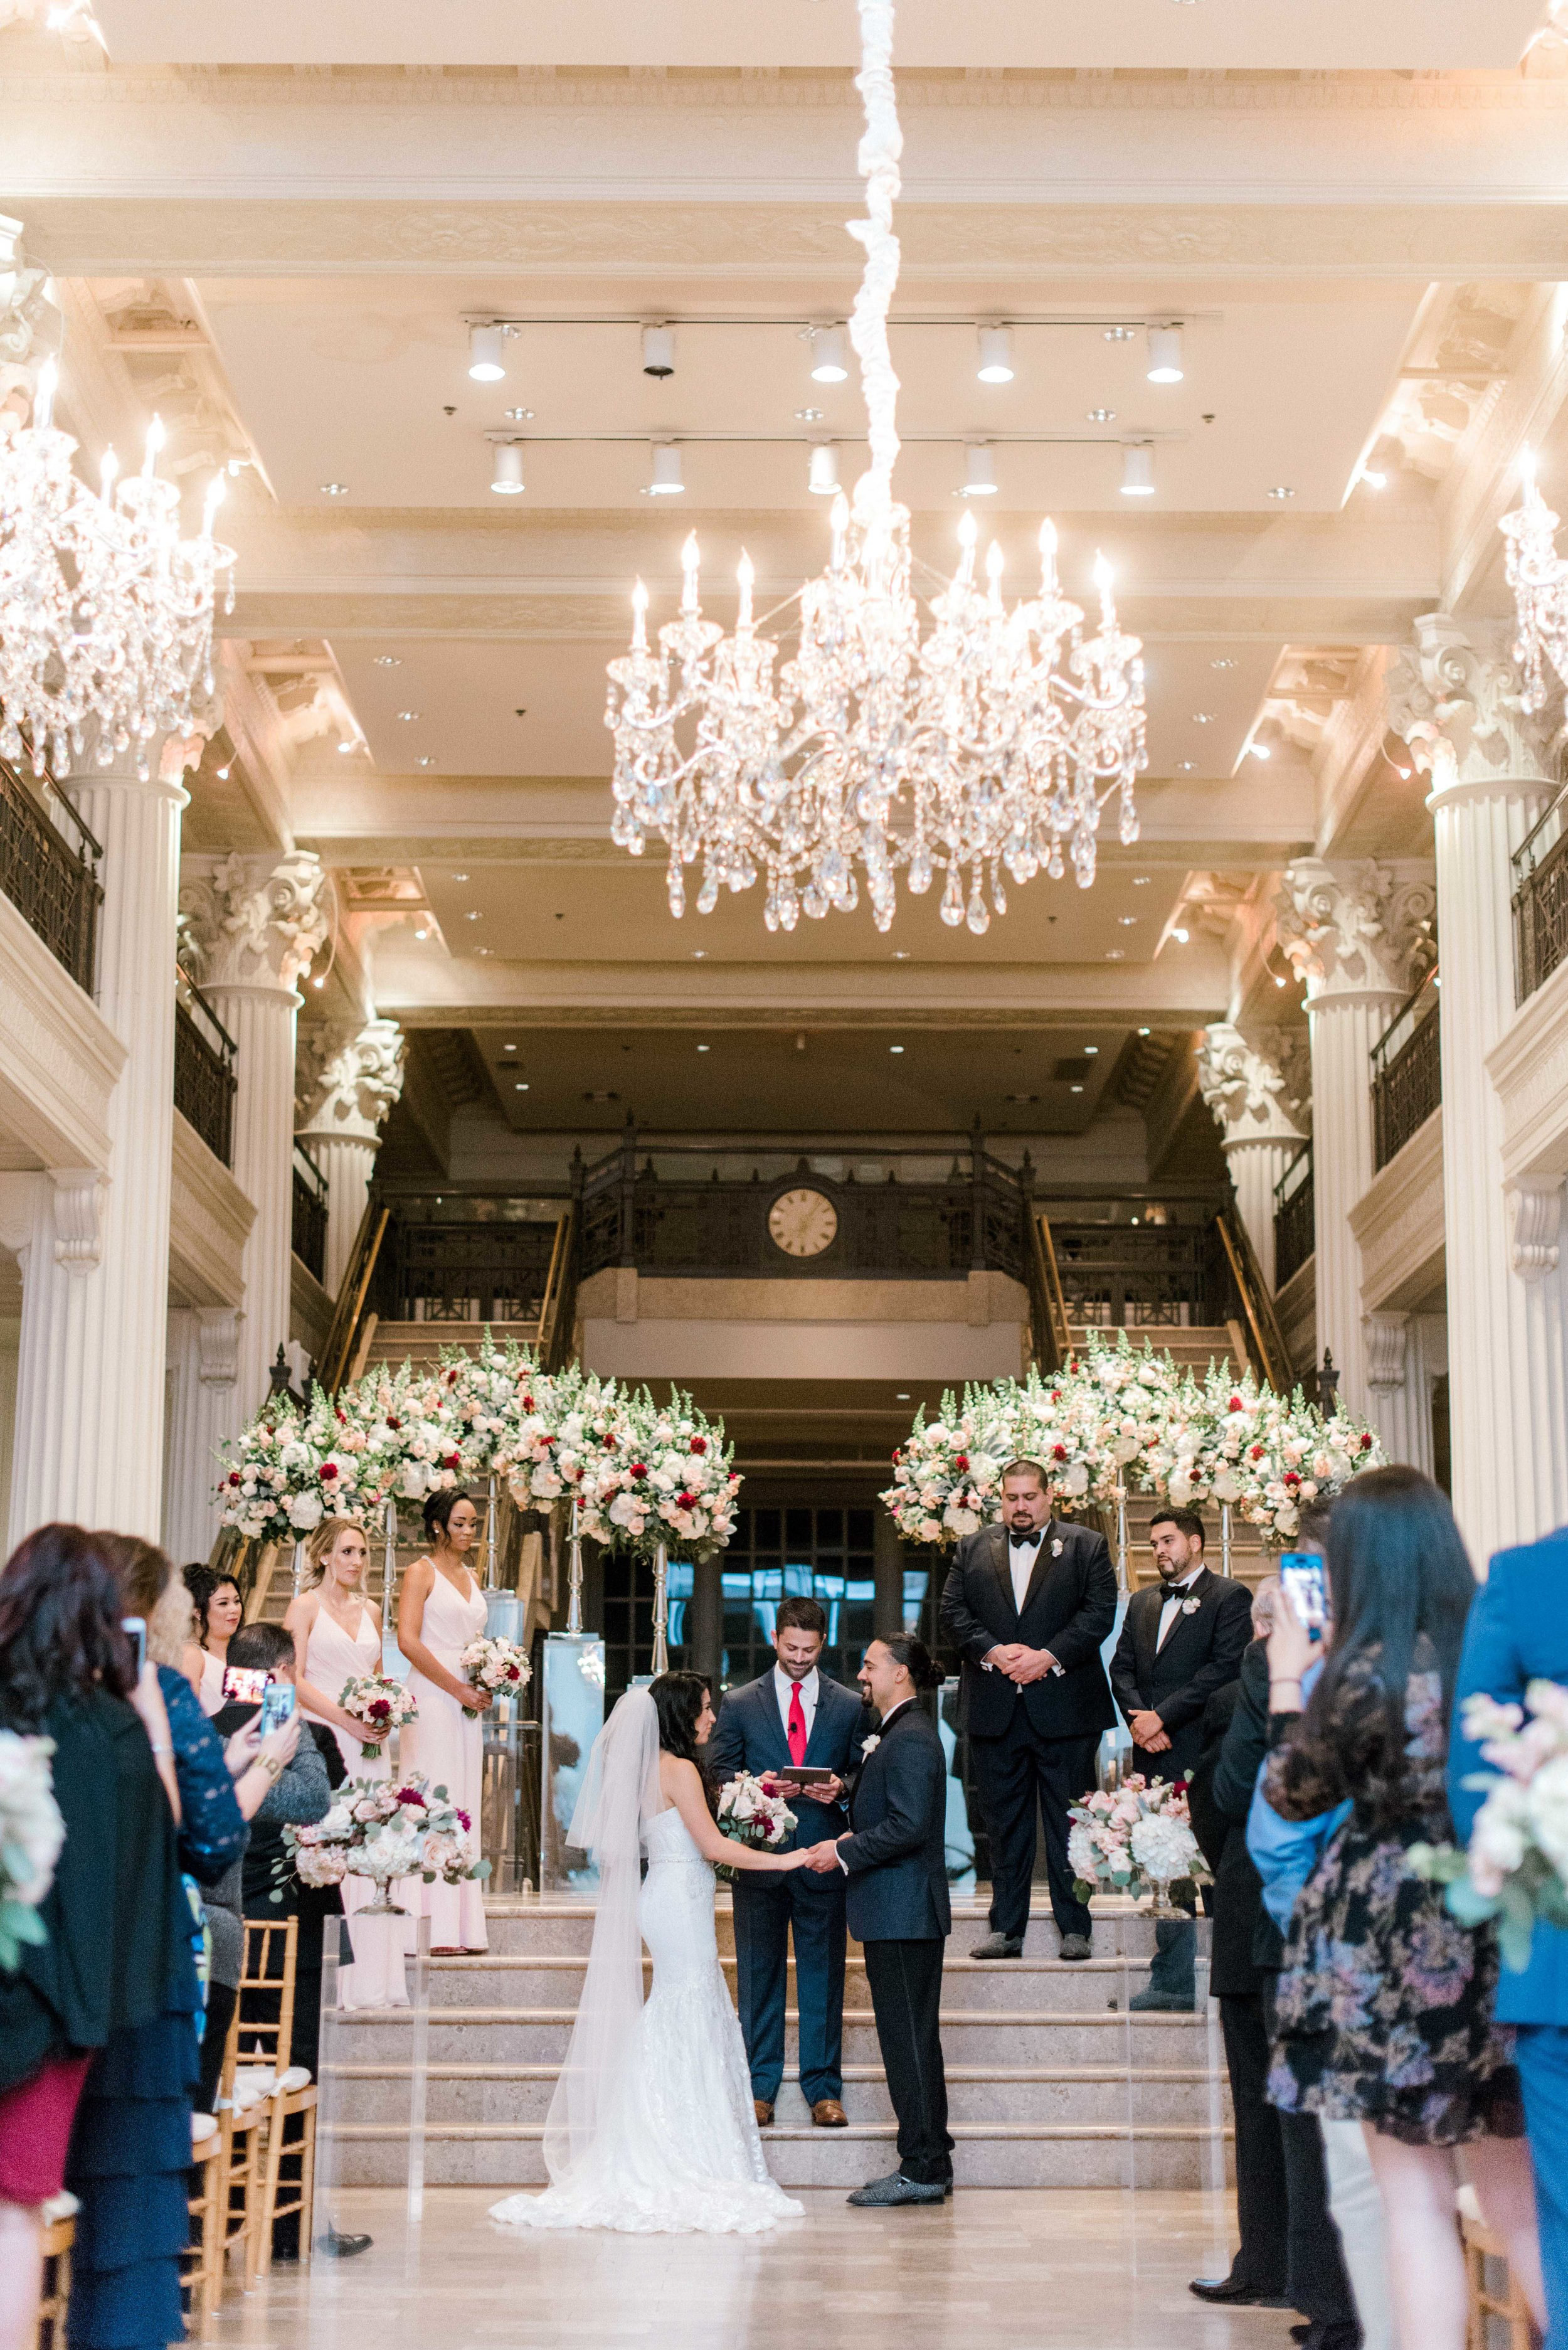 Houston-Wedding-Fine-Art-Film-Photographer-Belle-Events-Belle-of-the-Ball-Anthony-Rendon-Washington-Nationals-The-Corinthian-Style-Me-Pretty-30.jpg